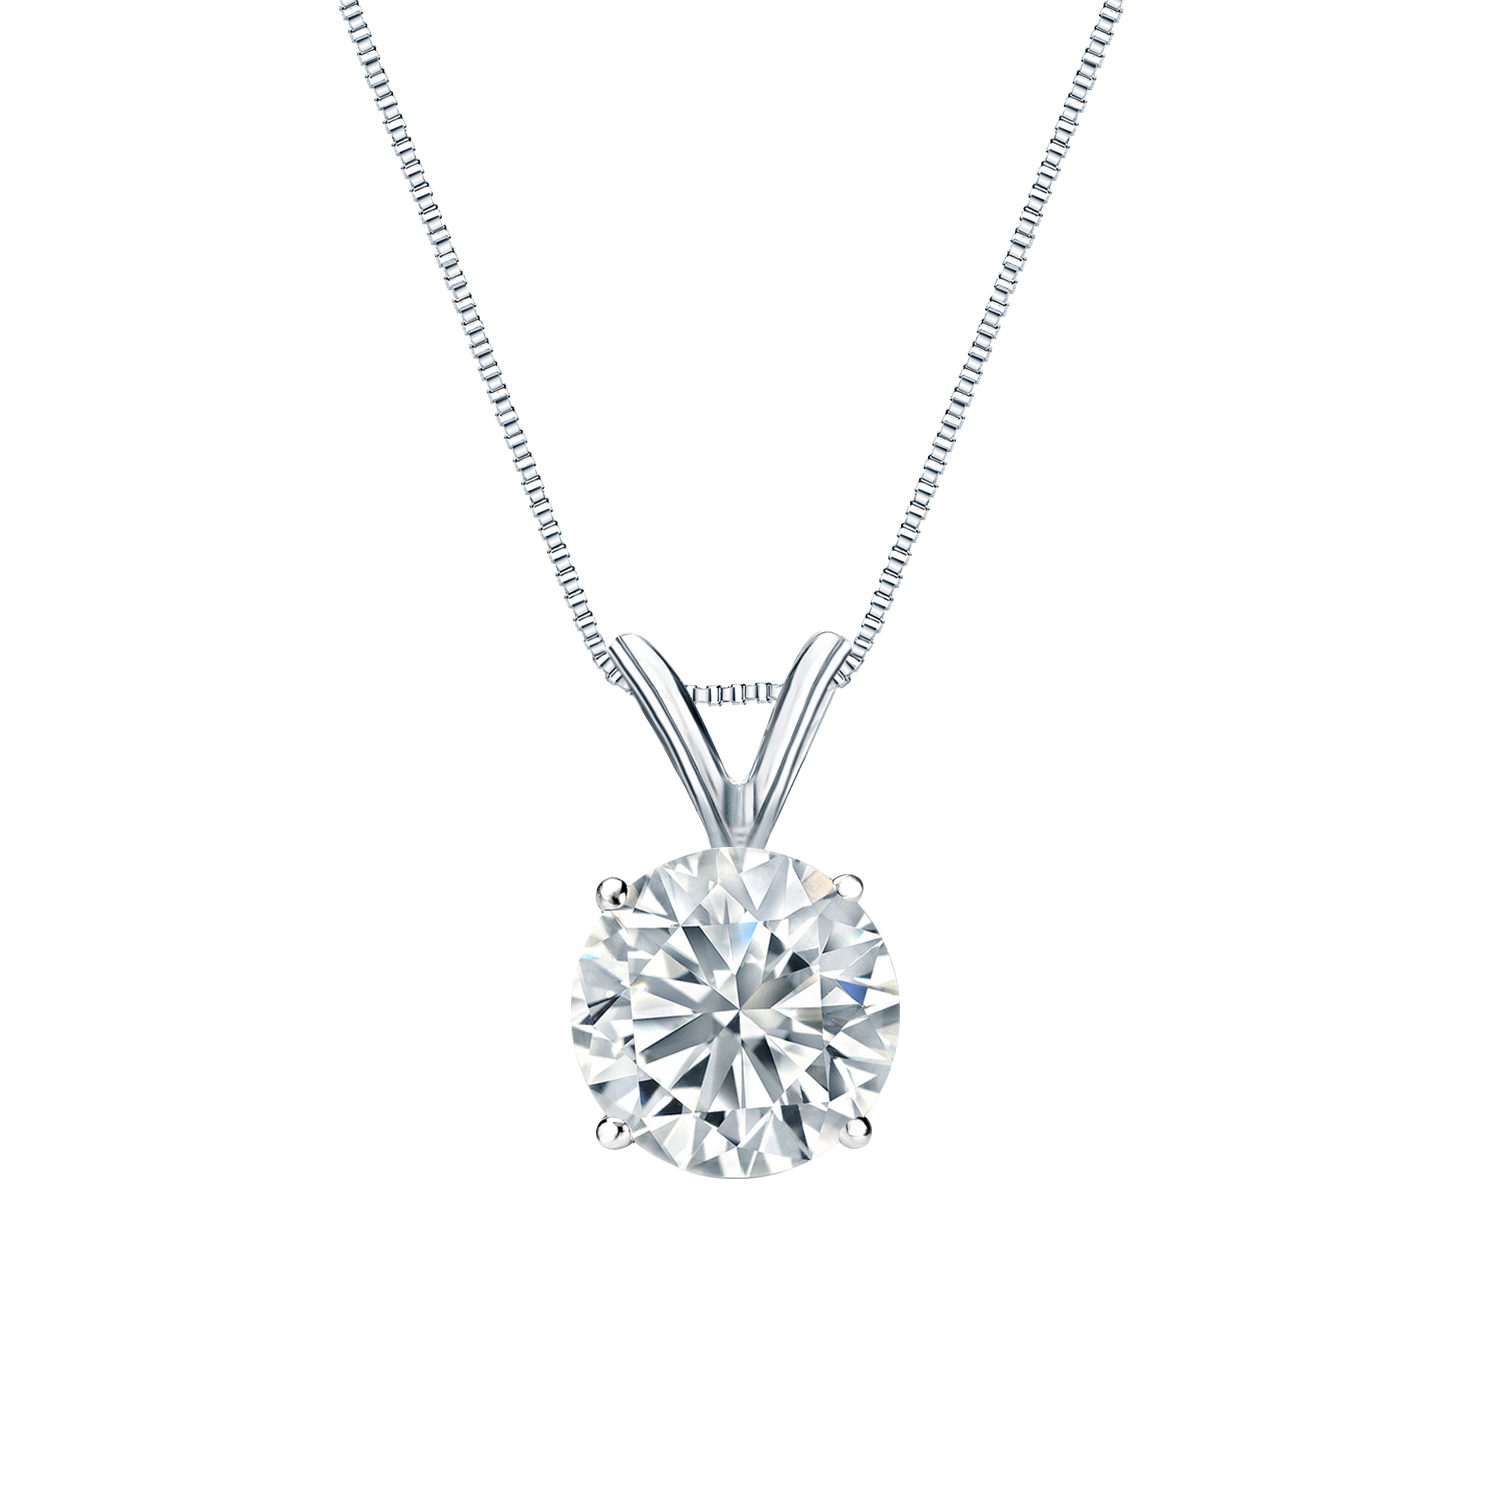 Certified 1.00 ct. tw. Round Diamond Solitaire Pendant in 14k White Gold 4-Prong Basket (I-J, I1)